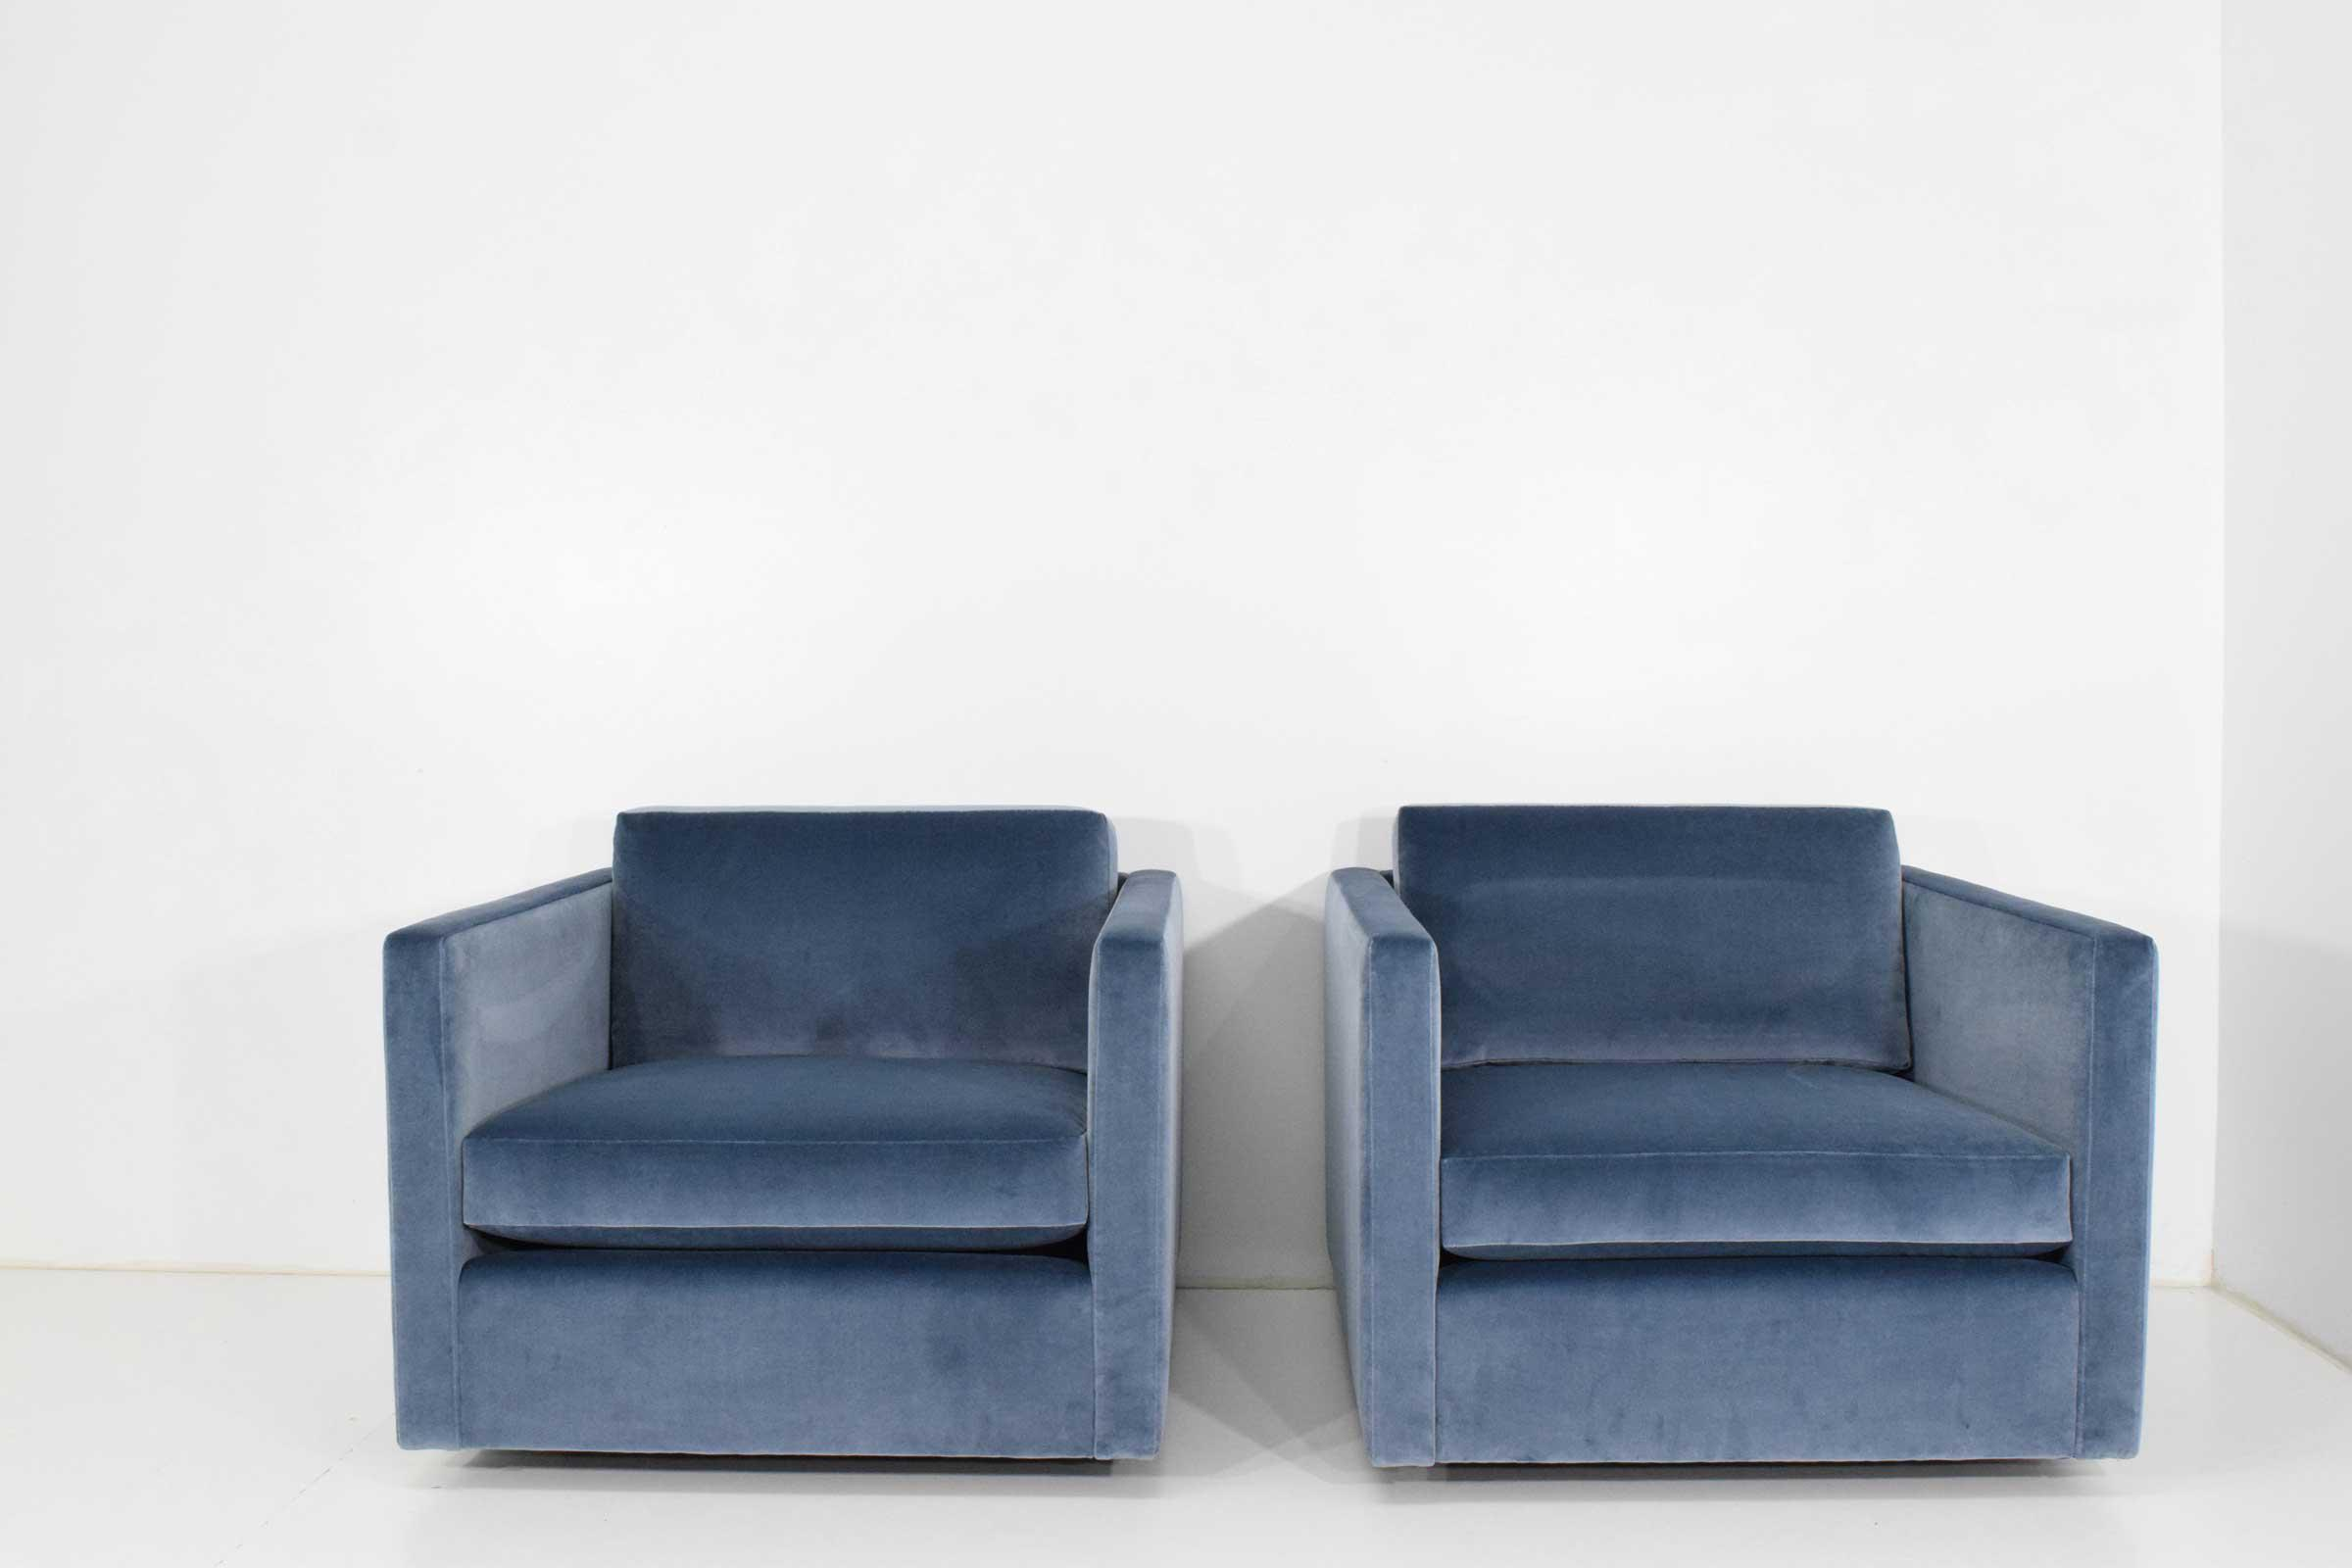 Pair Of Knoll Charles Pfister Chairs In Velvet   Image 2 Of 12